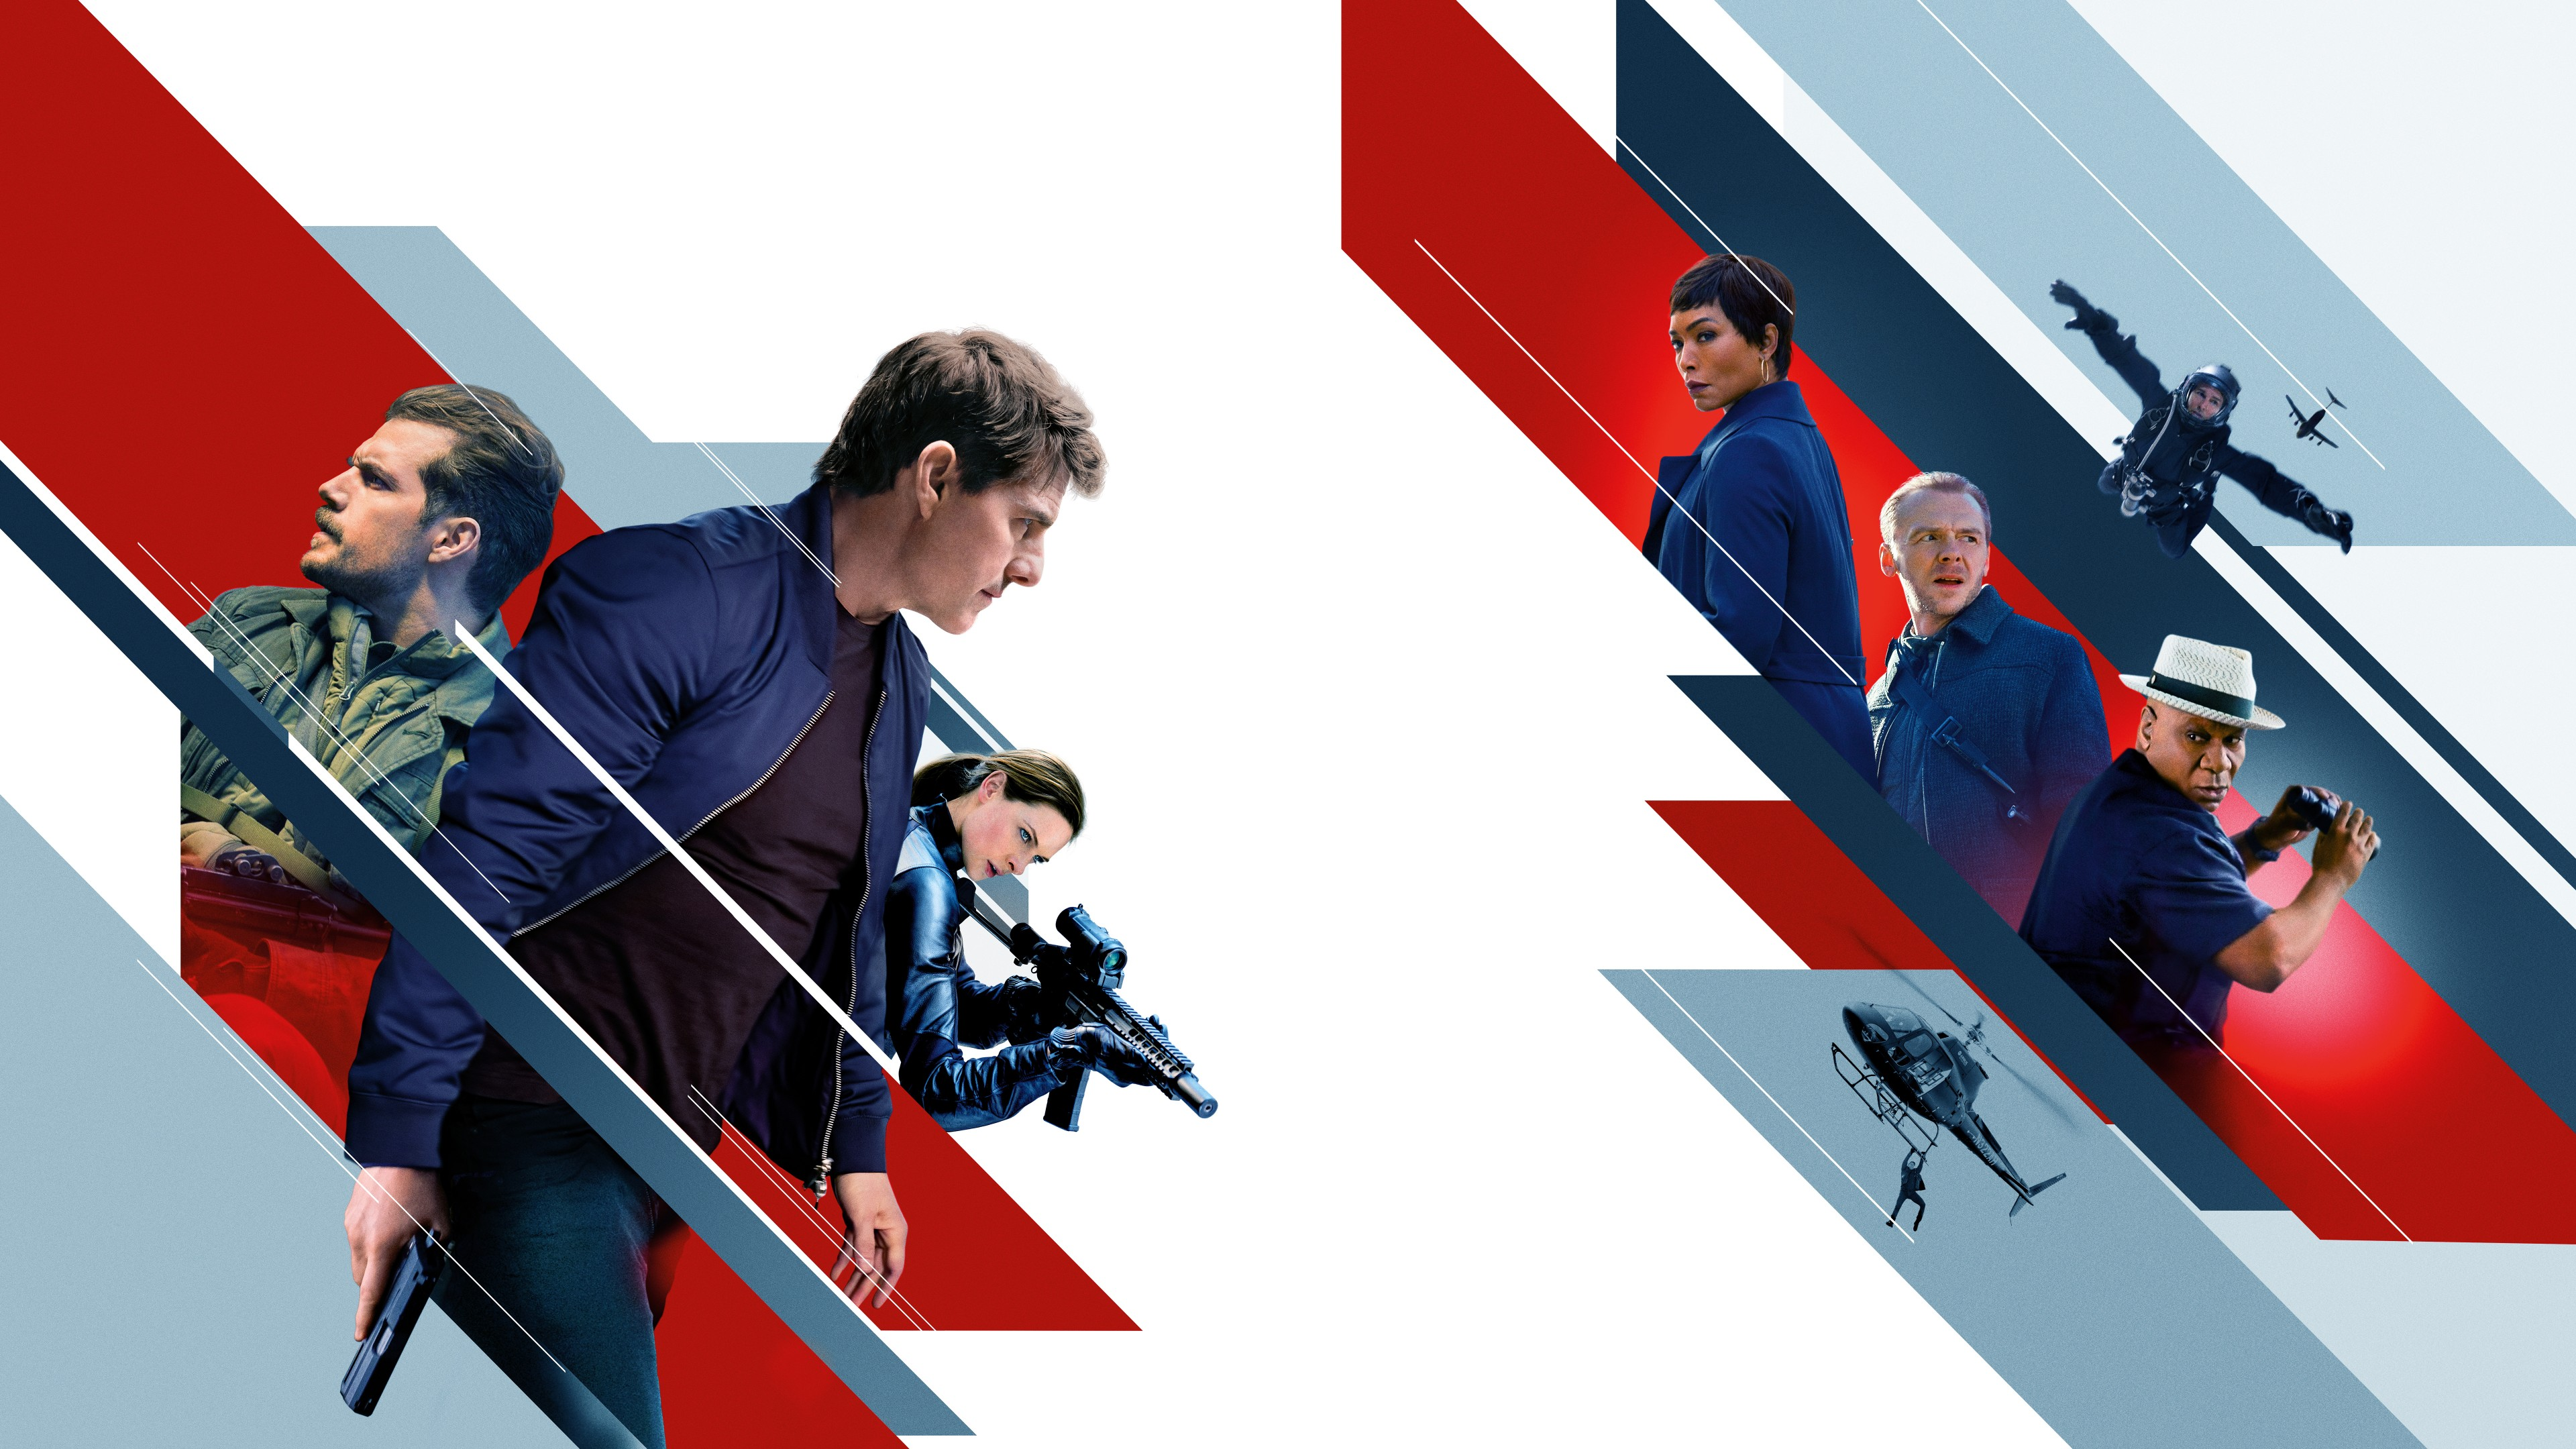 Mission Impossible Fallout 2018 Movie Poster Wallpaper 4K 3840x2160